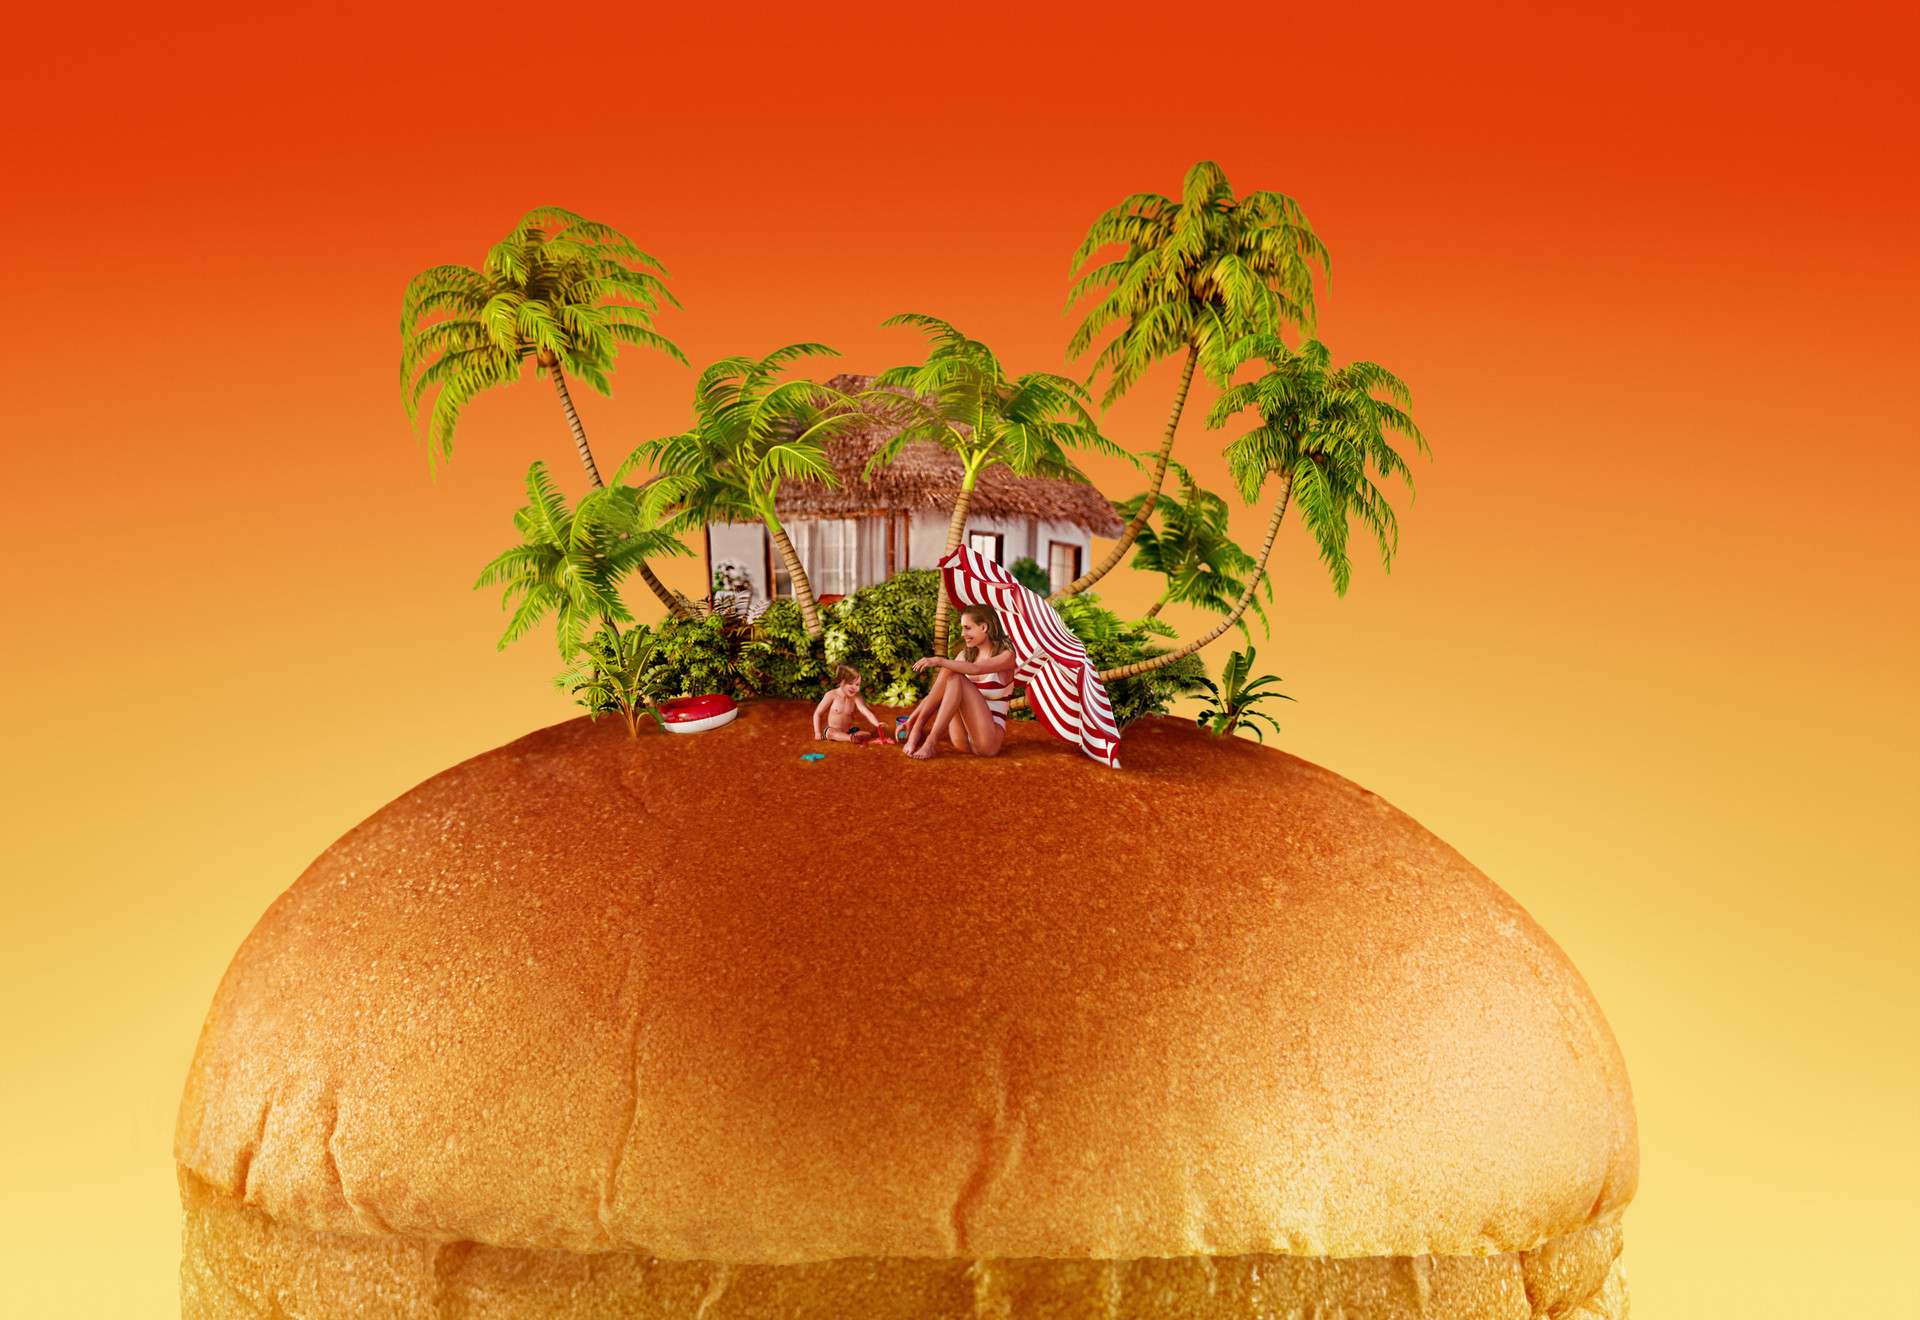 KW_Burger Bun-Island_feb_19_v2.mp4